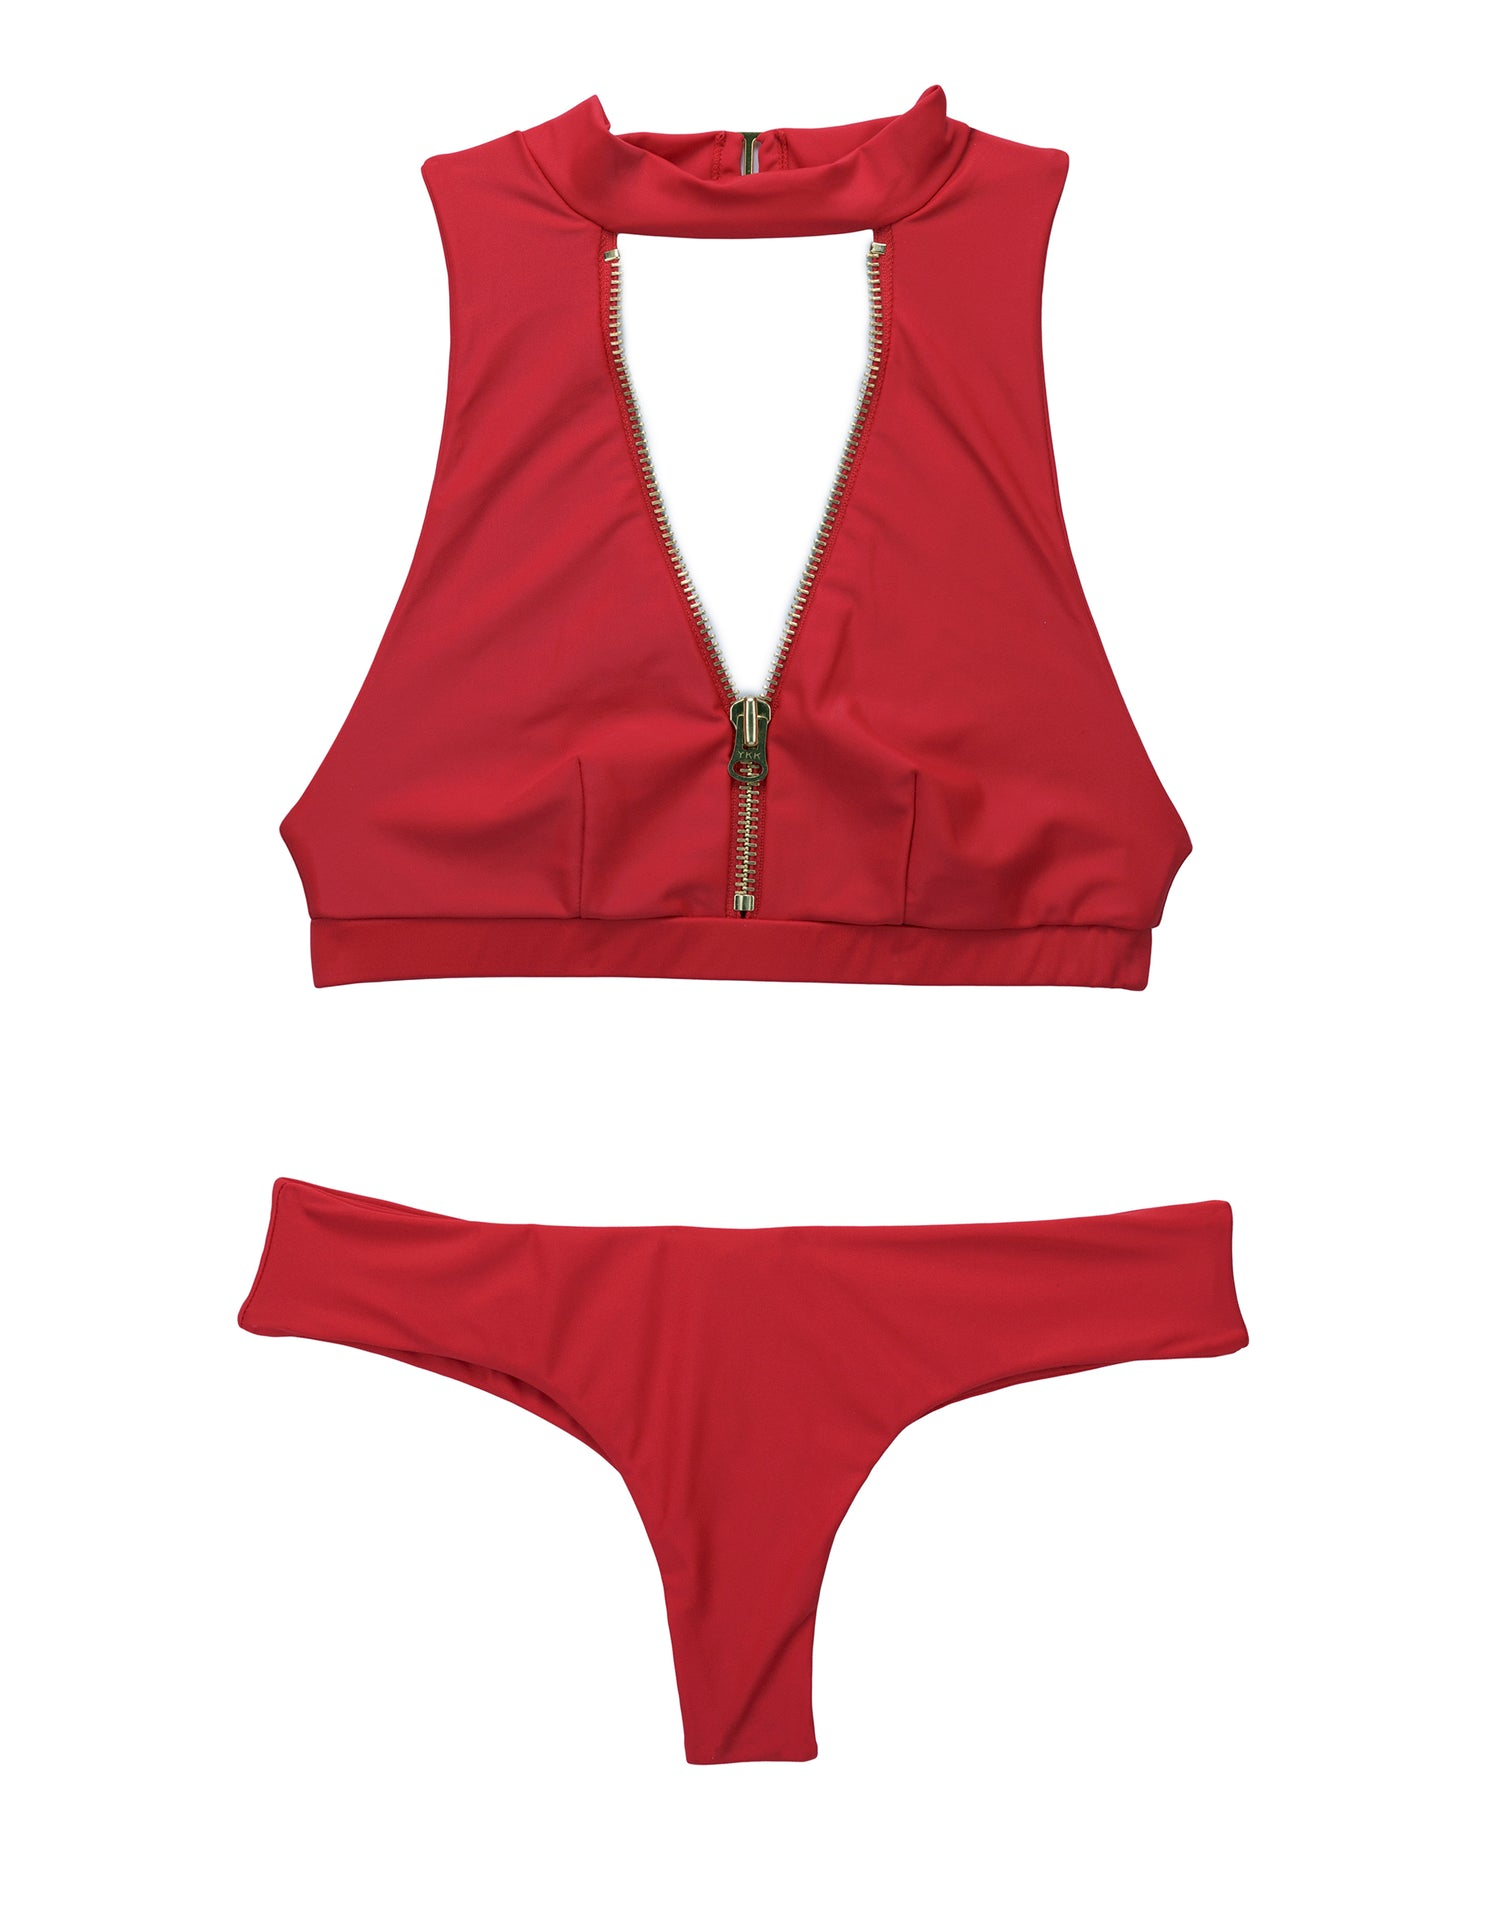 Zoey High Neck Bikini Top in Red - product view